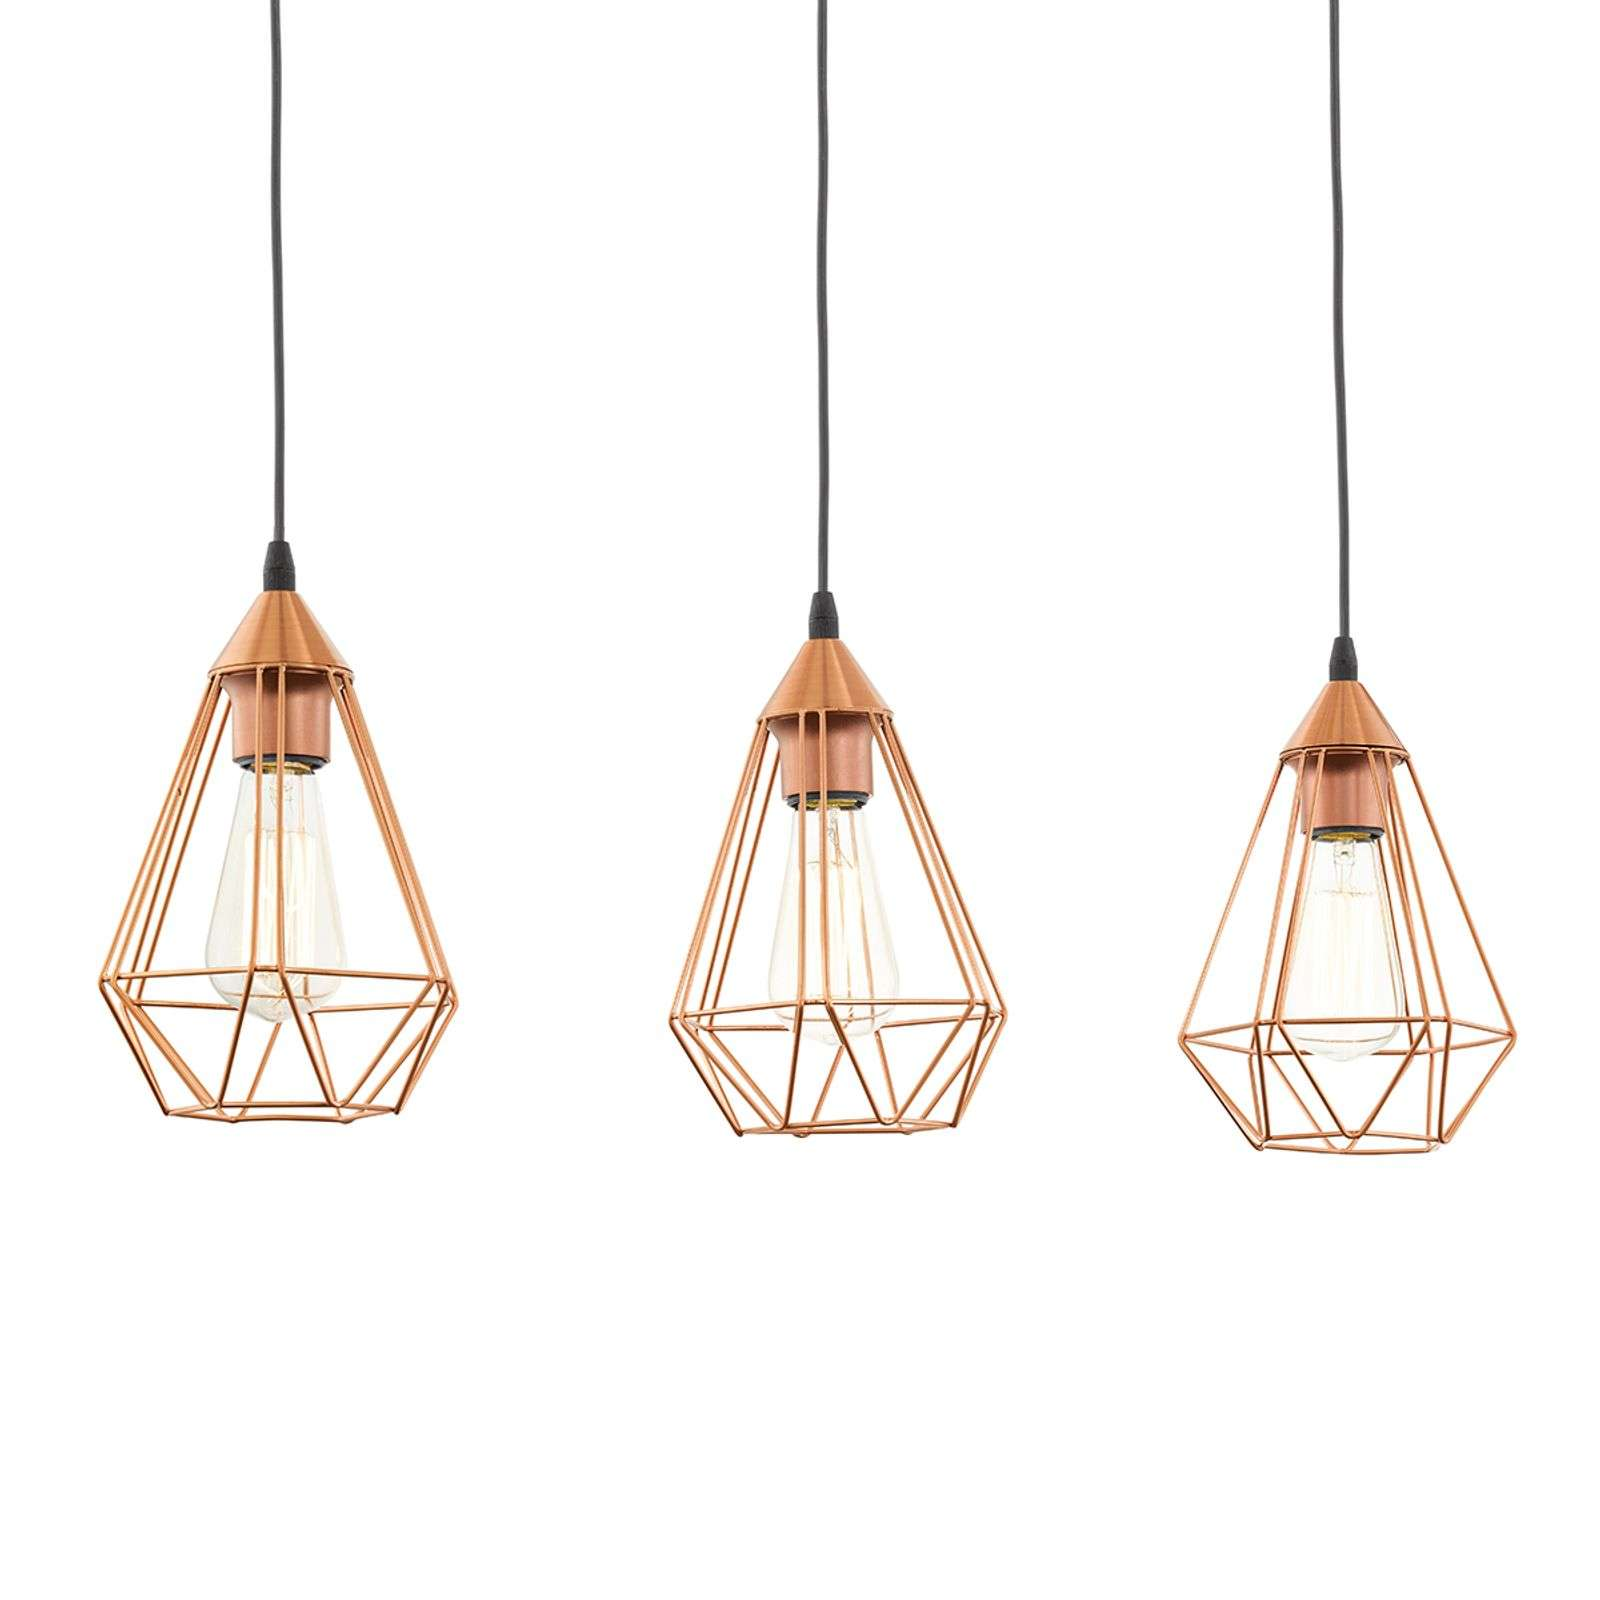 Suspension Vintage 3 lampes, finition cuivre